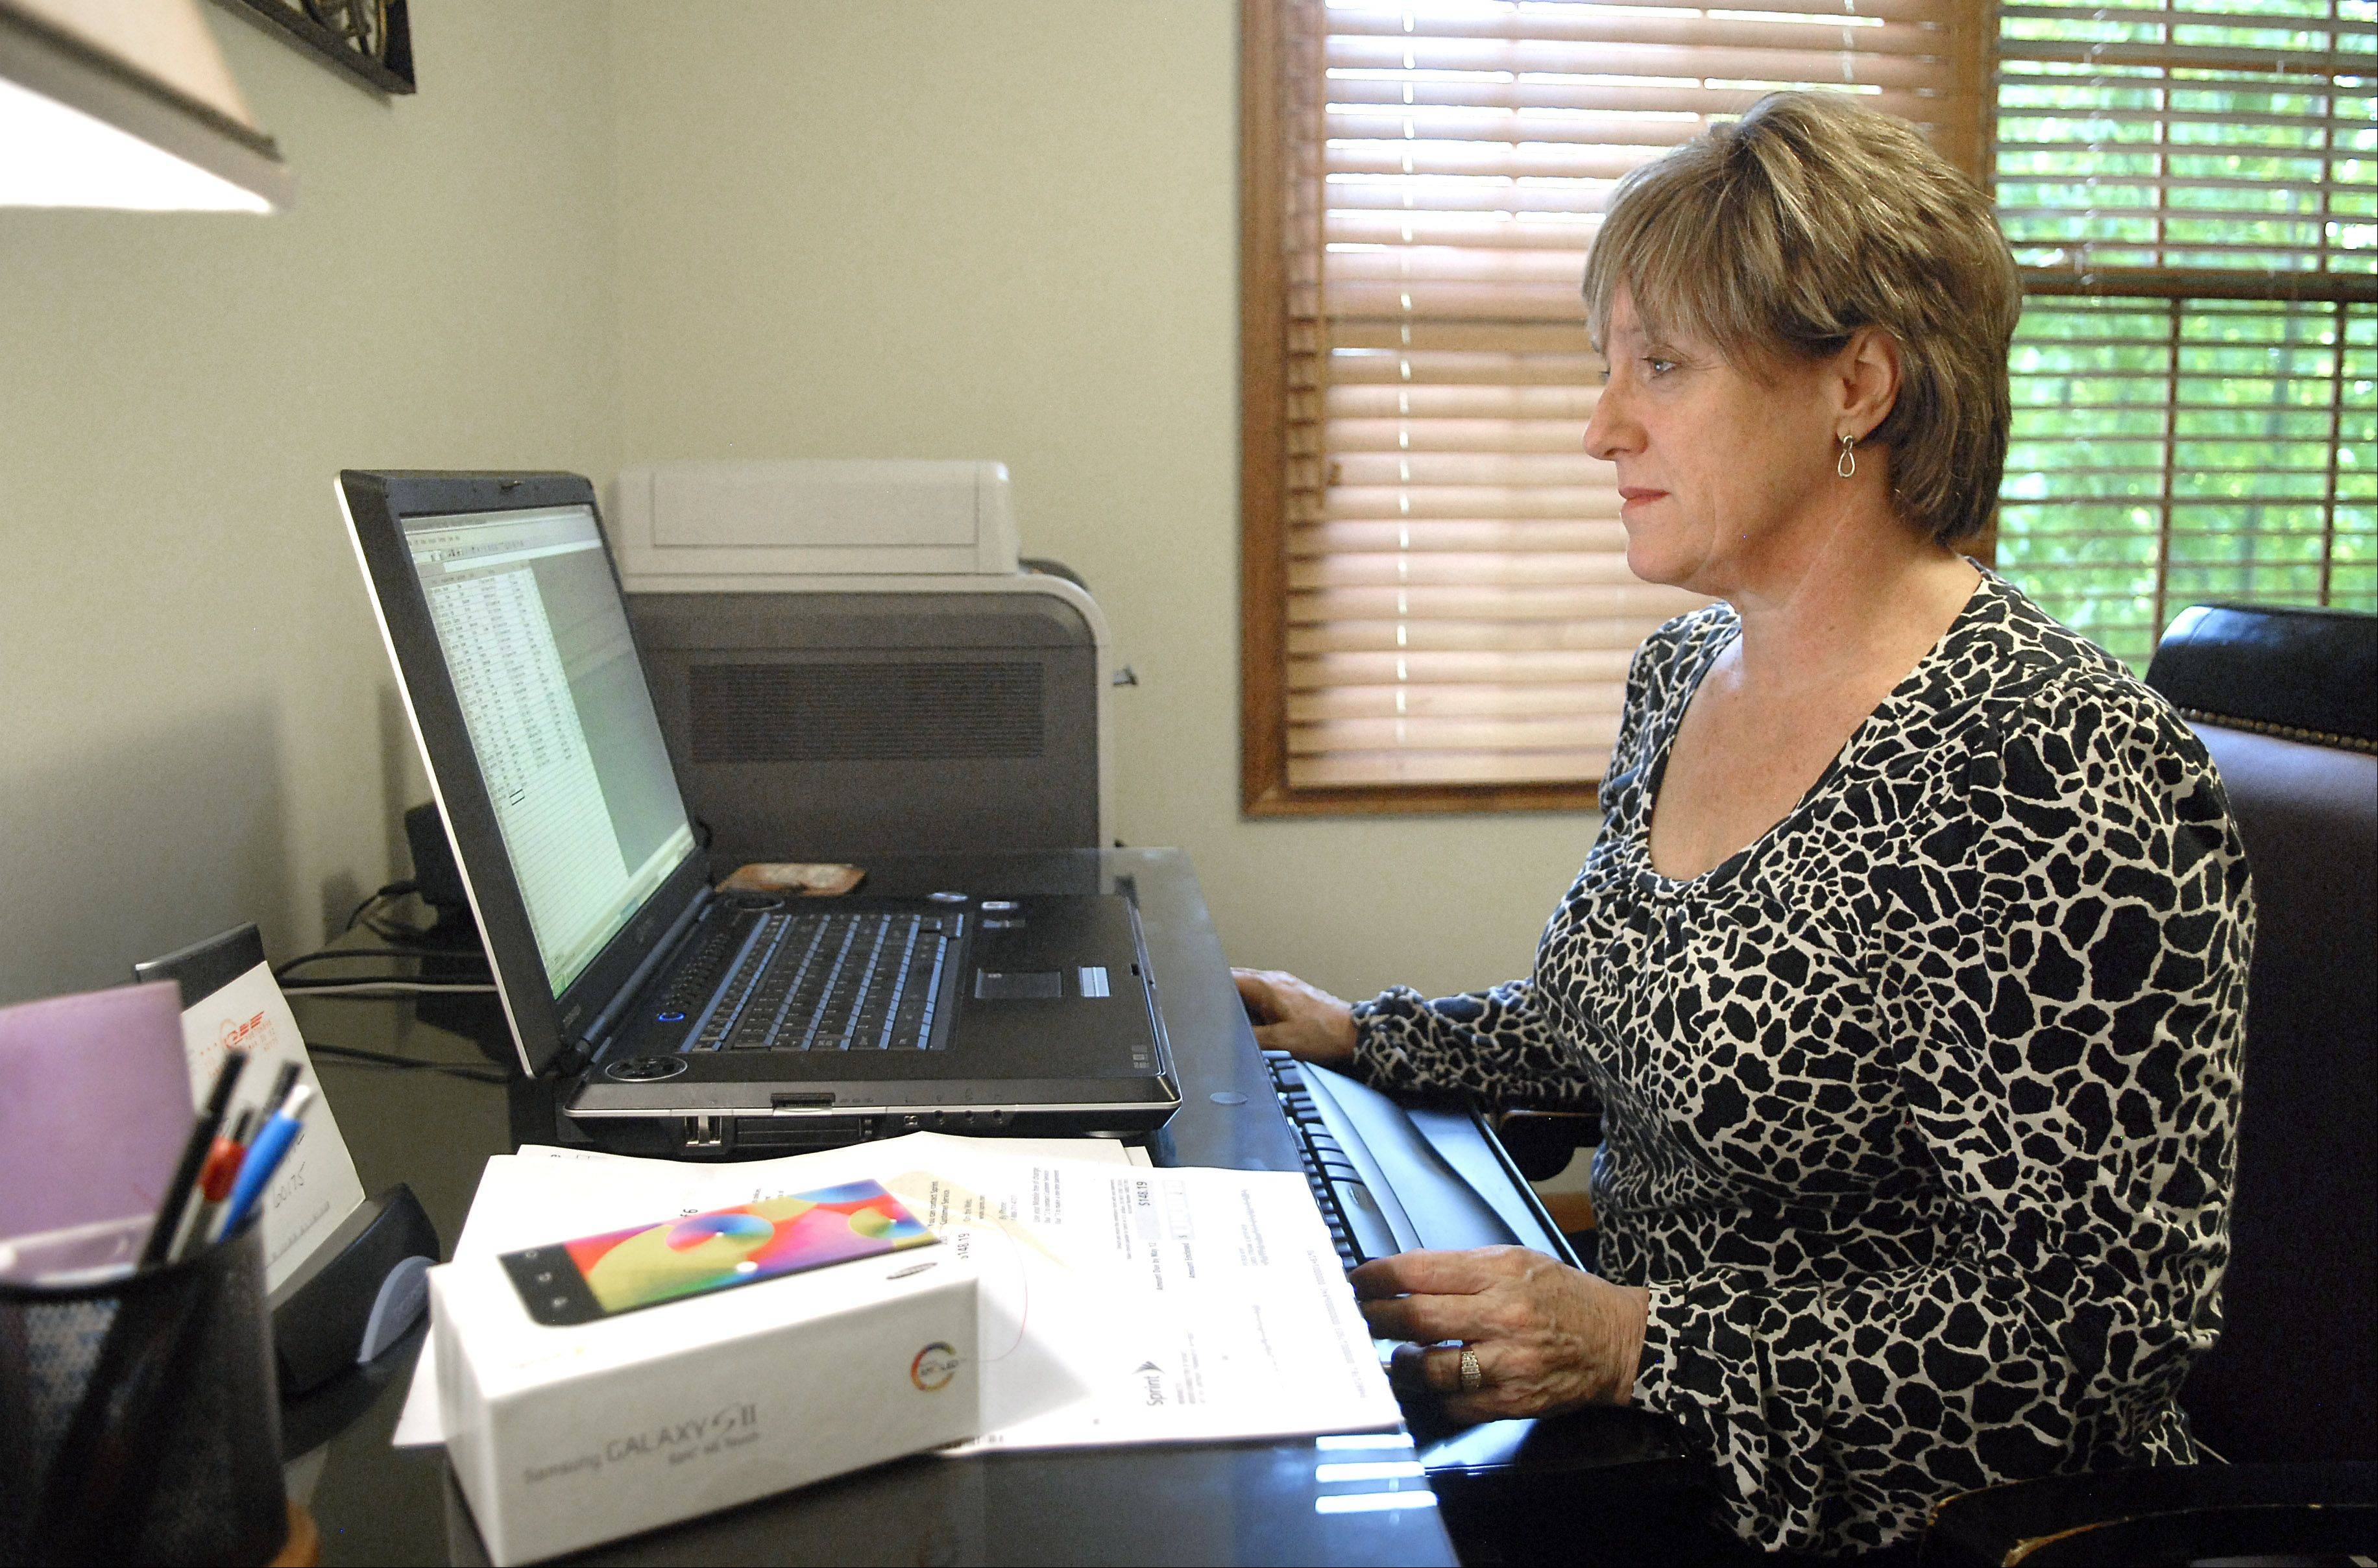 St. Charles resident Deb Conn couldn't get any Sprint service in her home office earlier this month, which the company attributes to work on a network upgrade.